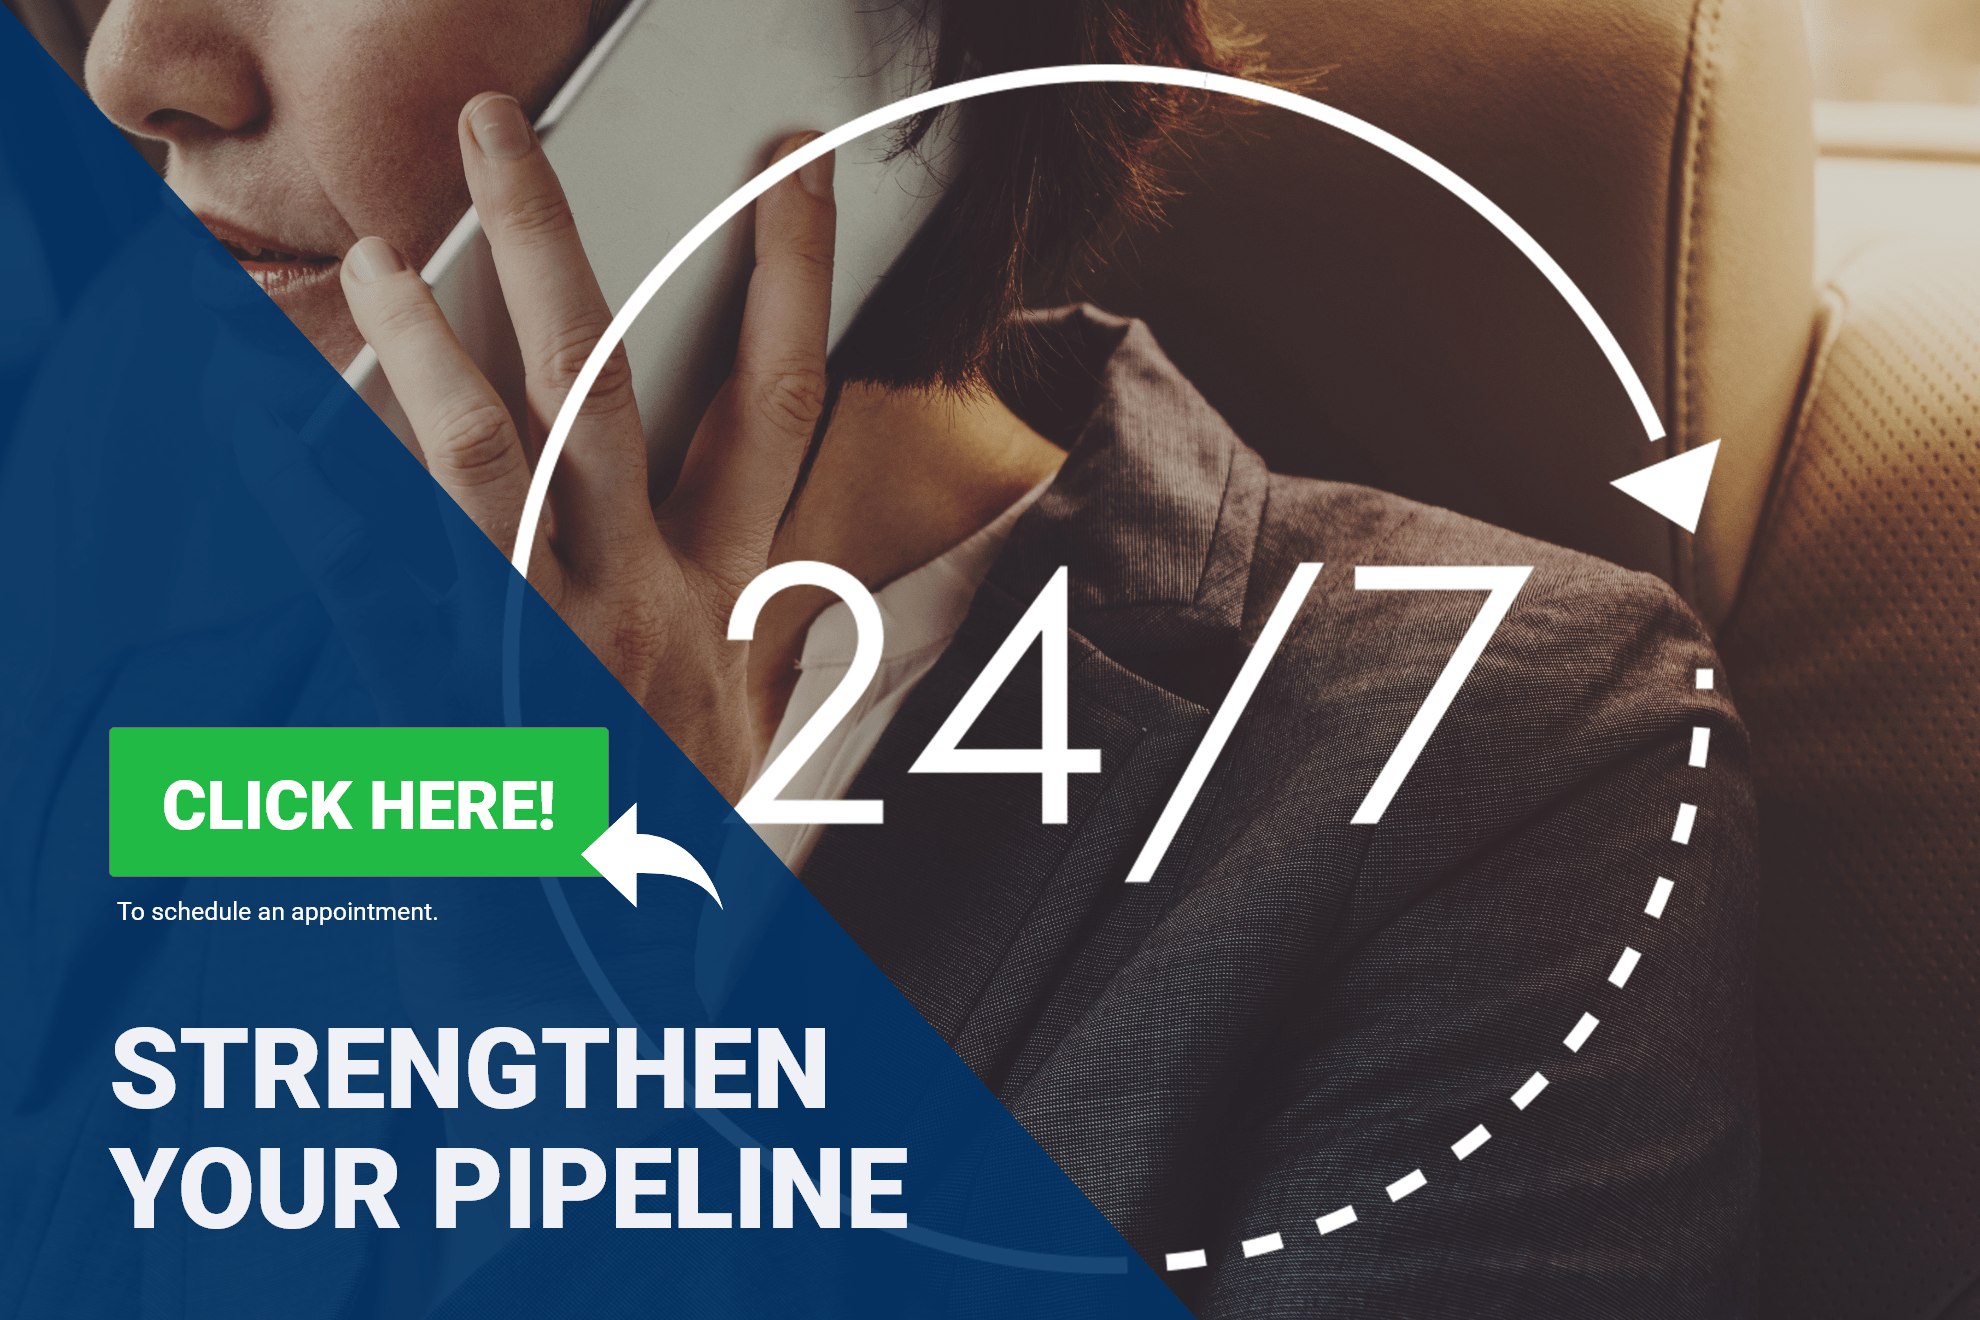 24/7 Call Center Services Can Strengthen Your Sales Pipeline